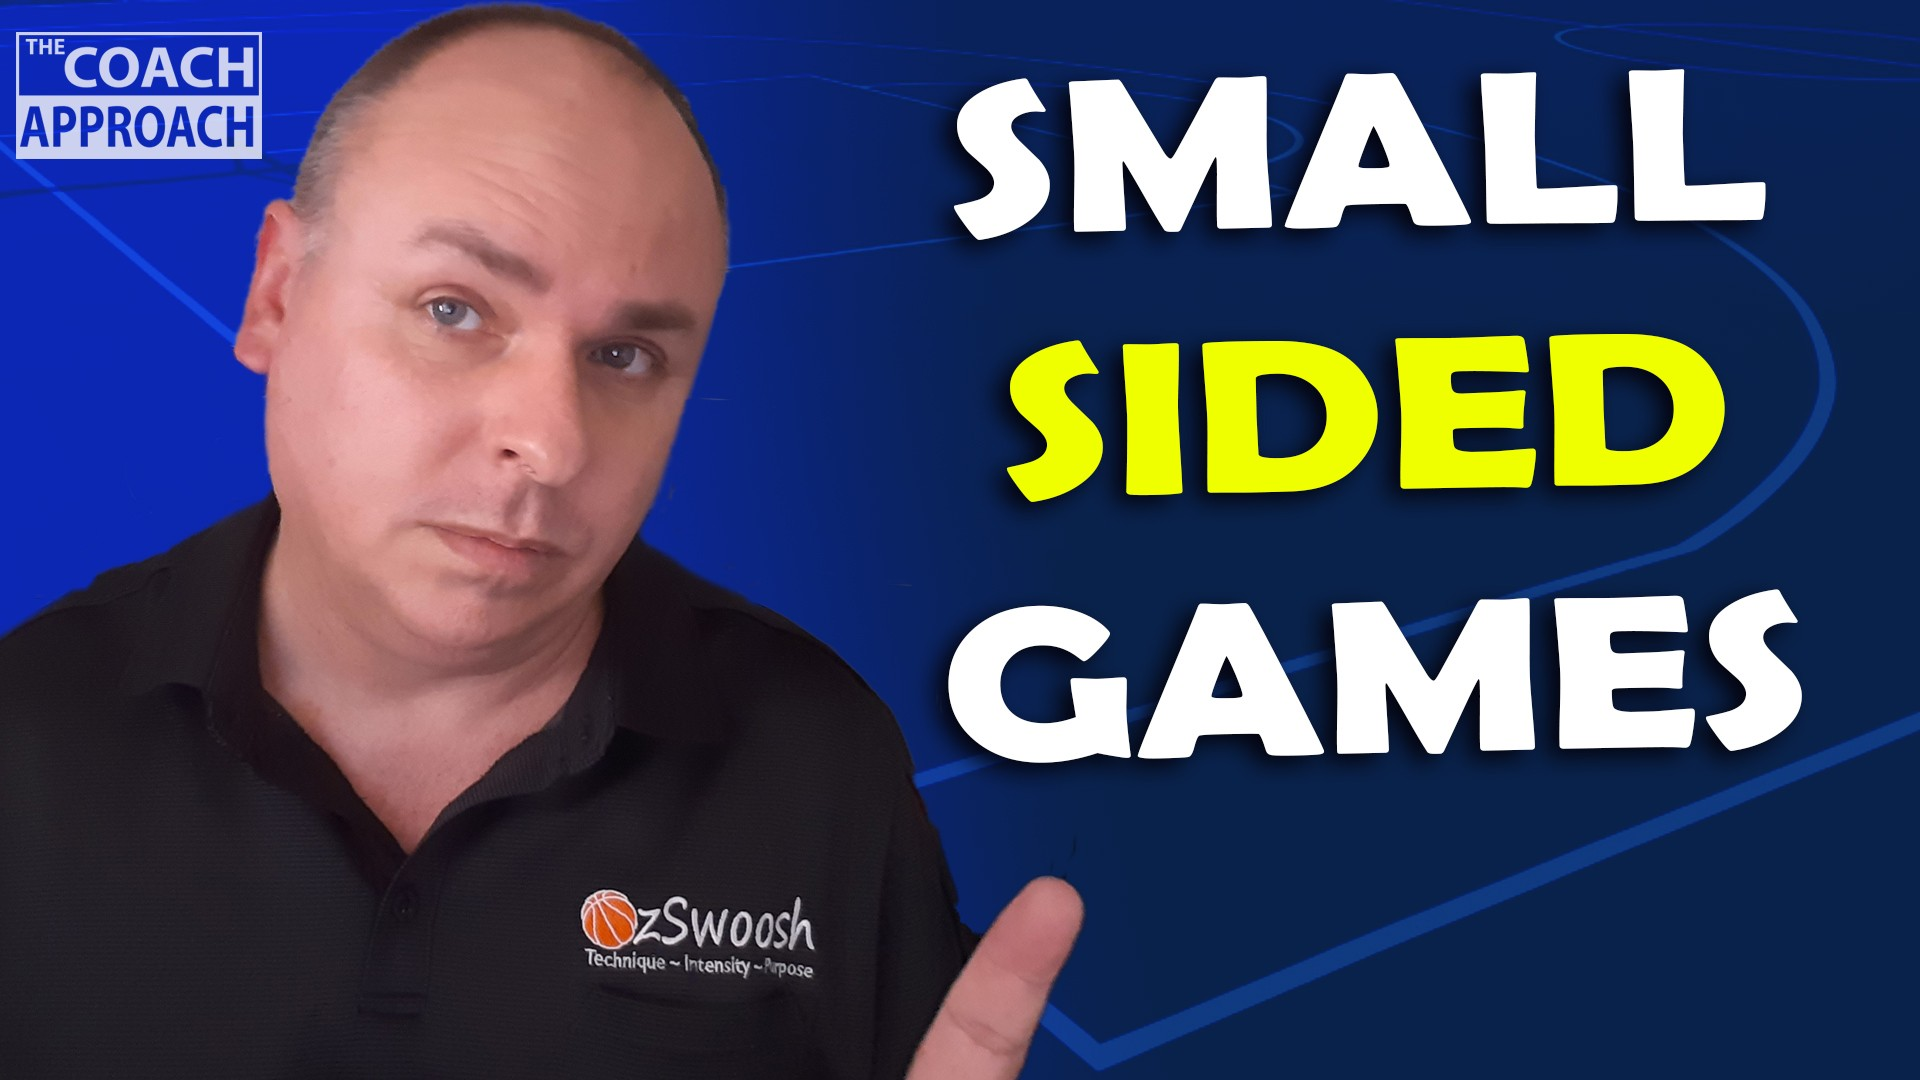 Small Sided Games In Basketball (The Coach Appraoch)